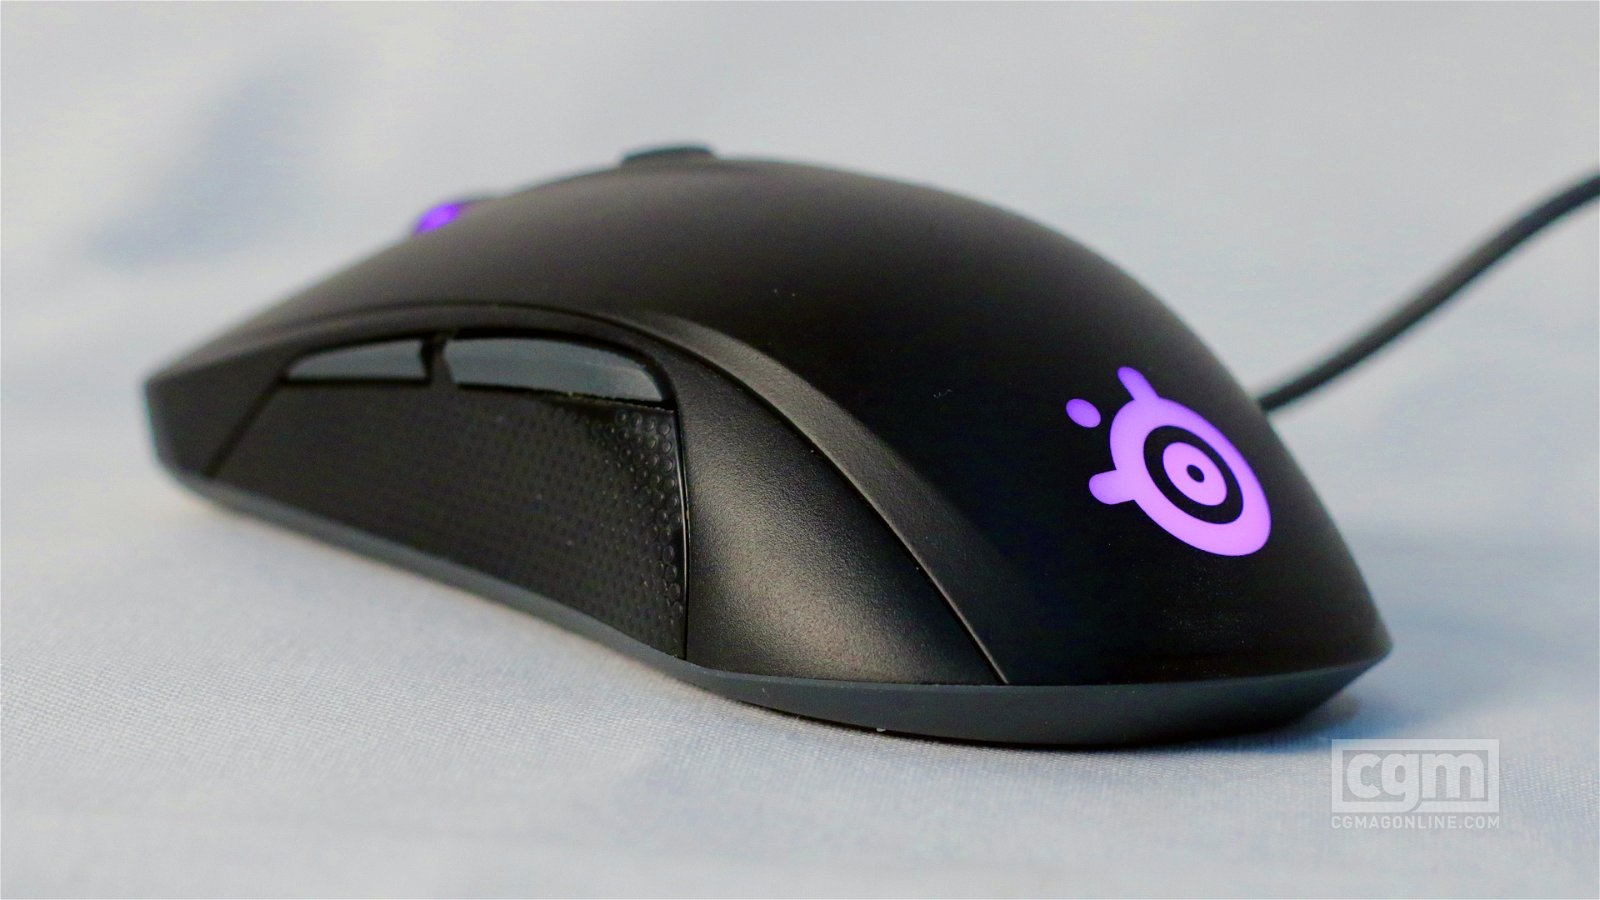 SteelSeries Rival 110 (Hardware) Review- The Core Essentials 5